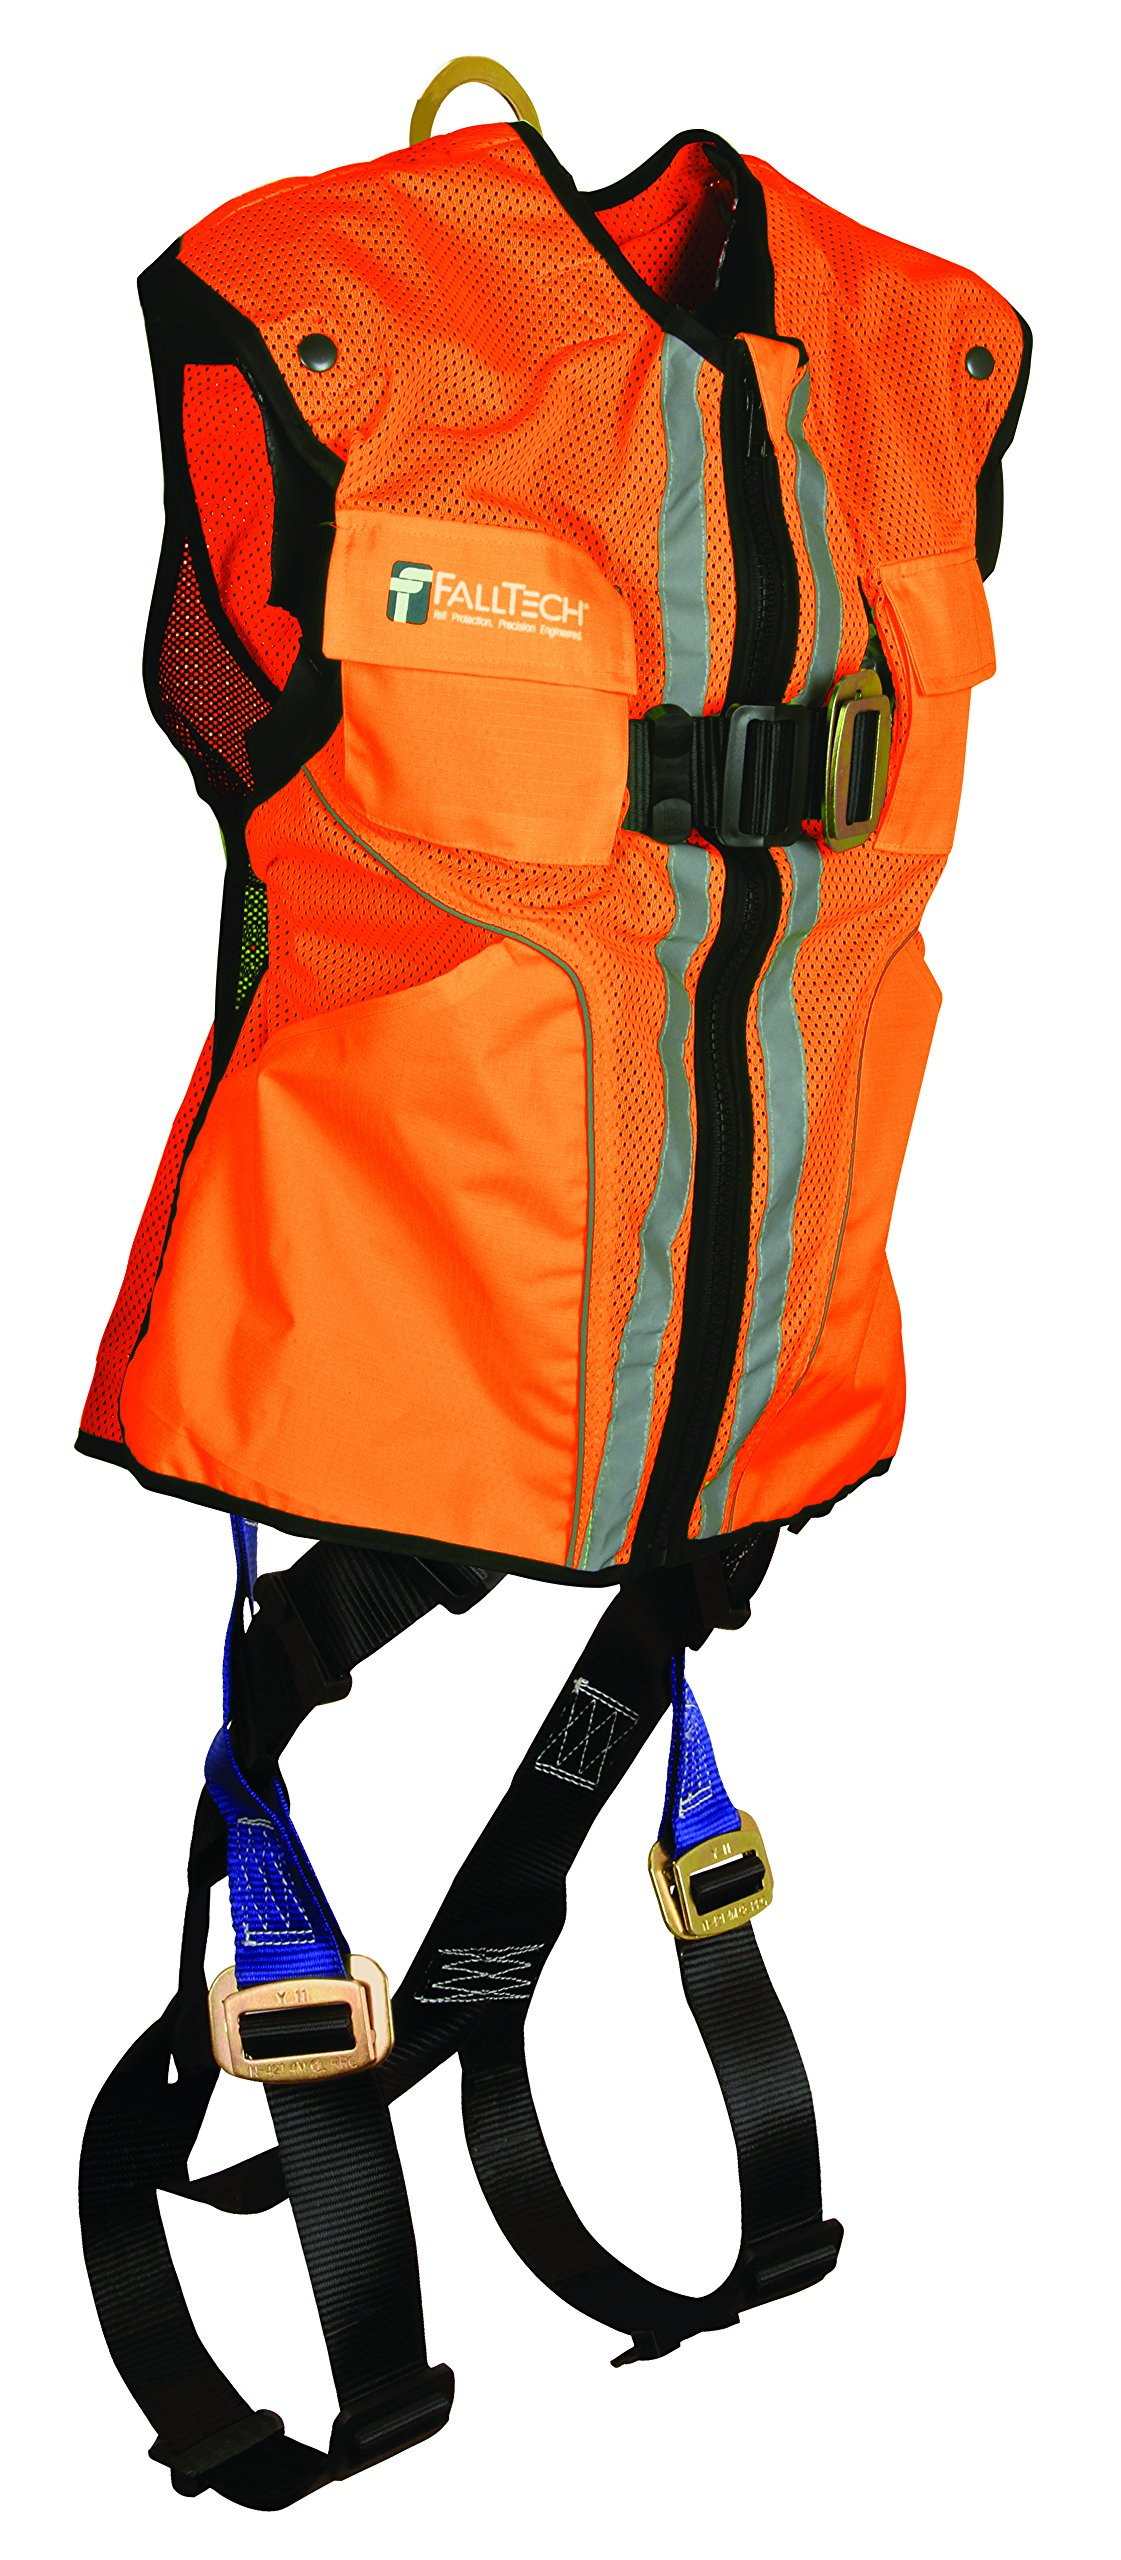 FallTech 7015SMO Hi-Vis Vest Harness, Non-Belted FBH - 1 Back D-Ring, Mating Buckle Legs and Chest, Contractor-Grade Reflective Vest, Orange, Small/Medium, Orange/Blue